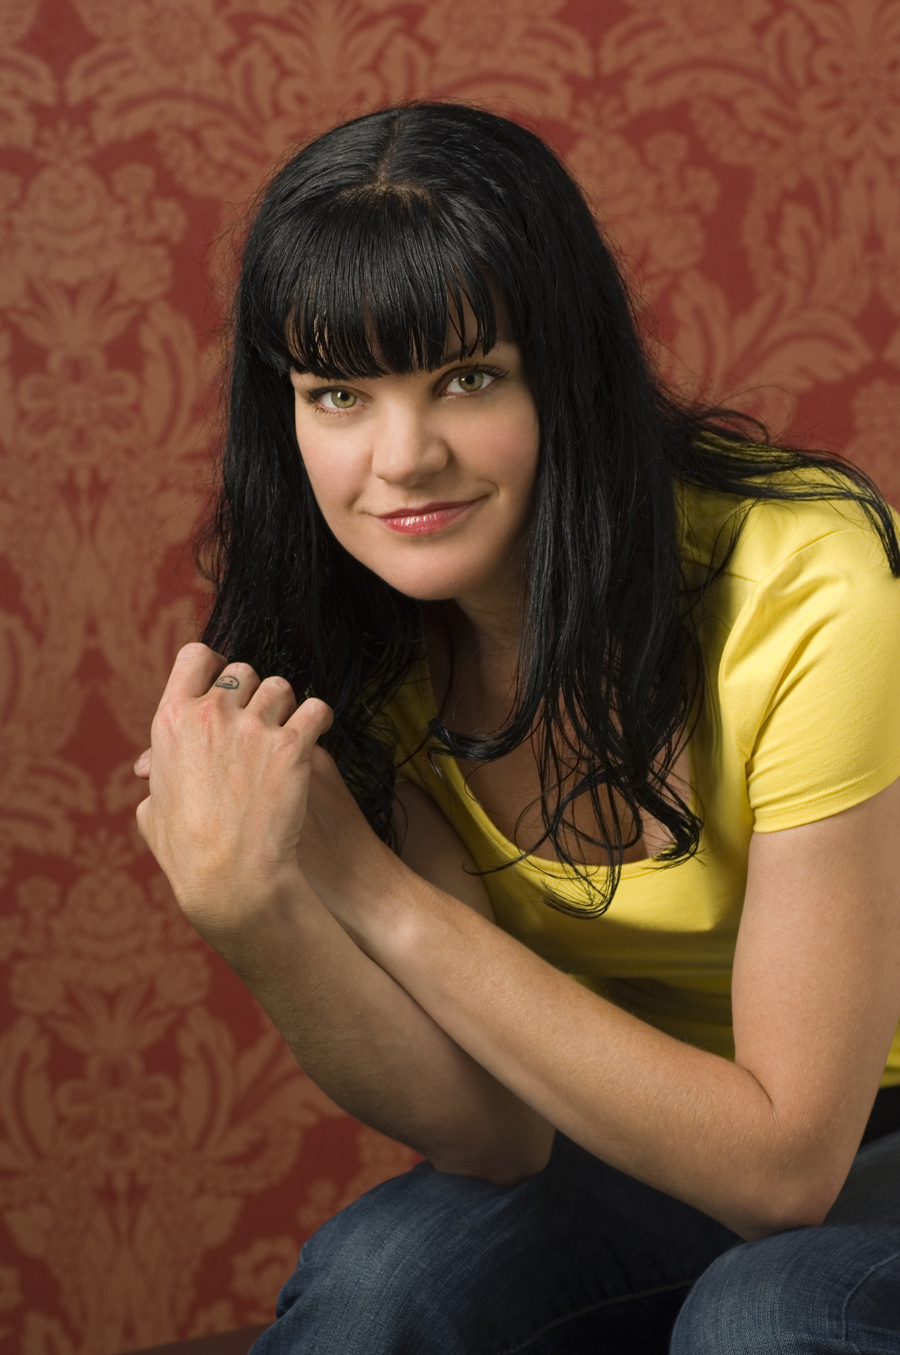 Pin dog paw tattoos on pinterest for Pauley perrette tattoos